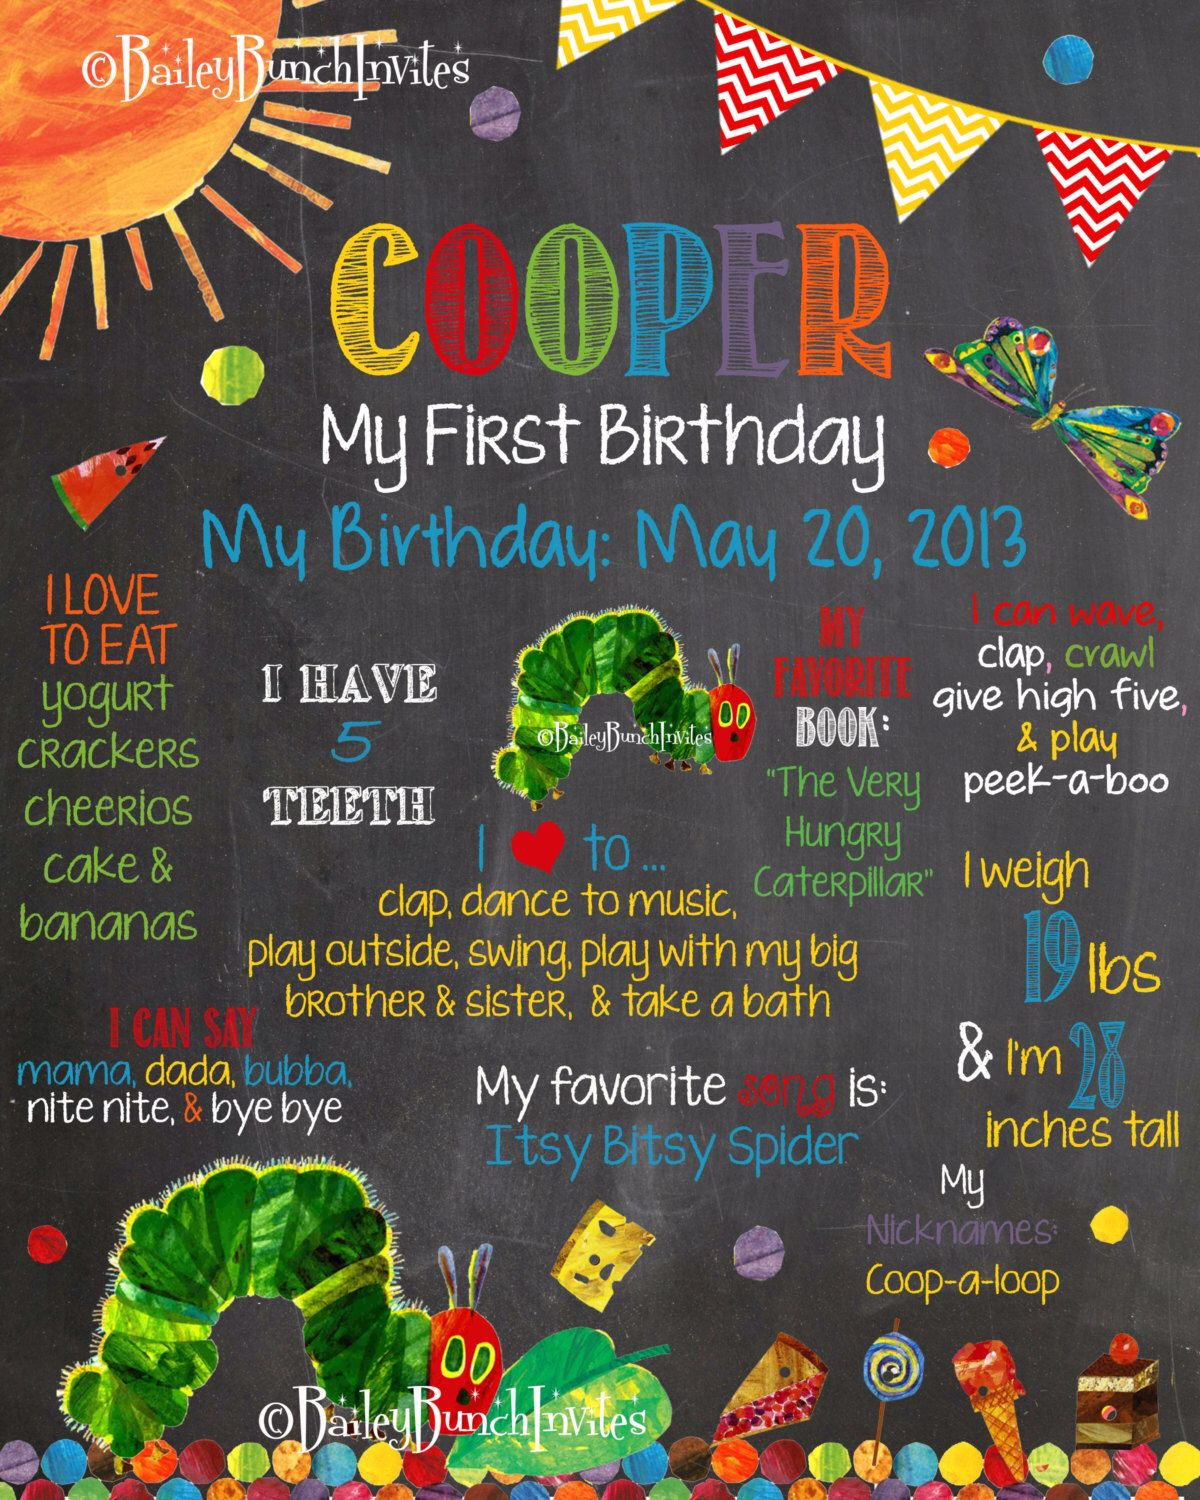 The Very Hungry Caterpillar Birthday Chalkboard Poster First Birthday Chalkboard Photography Prop Party Accessories by BaileyBunchInvites on Etsy https://www.etsy.com/listing/191511000/the-very-hungry-caterpillar-birthday